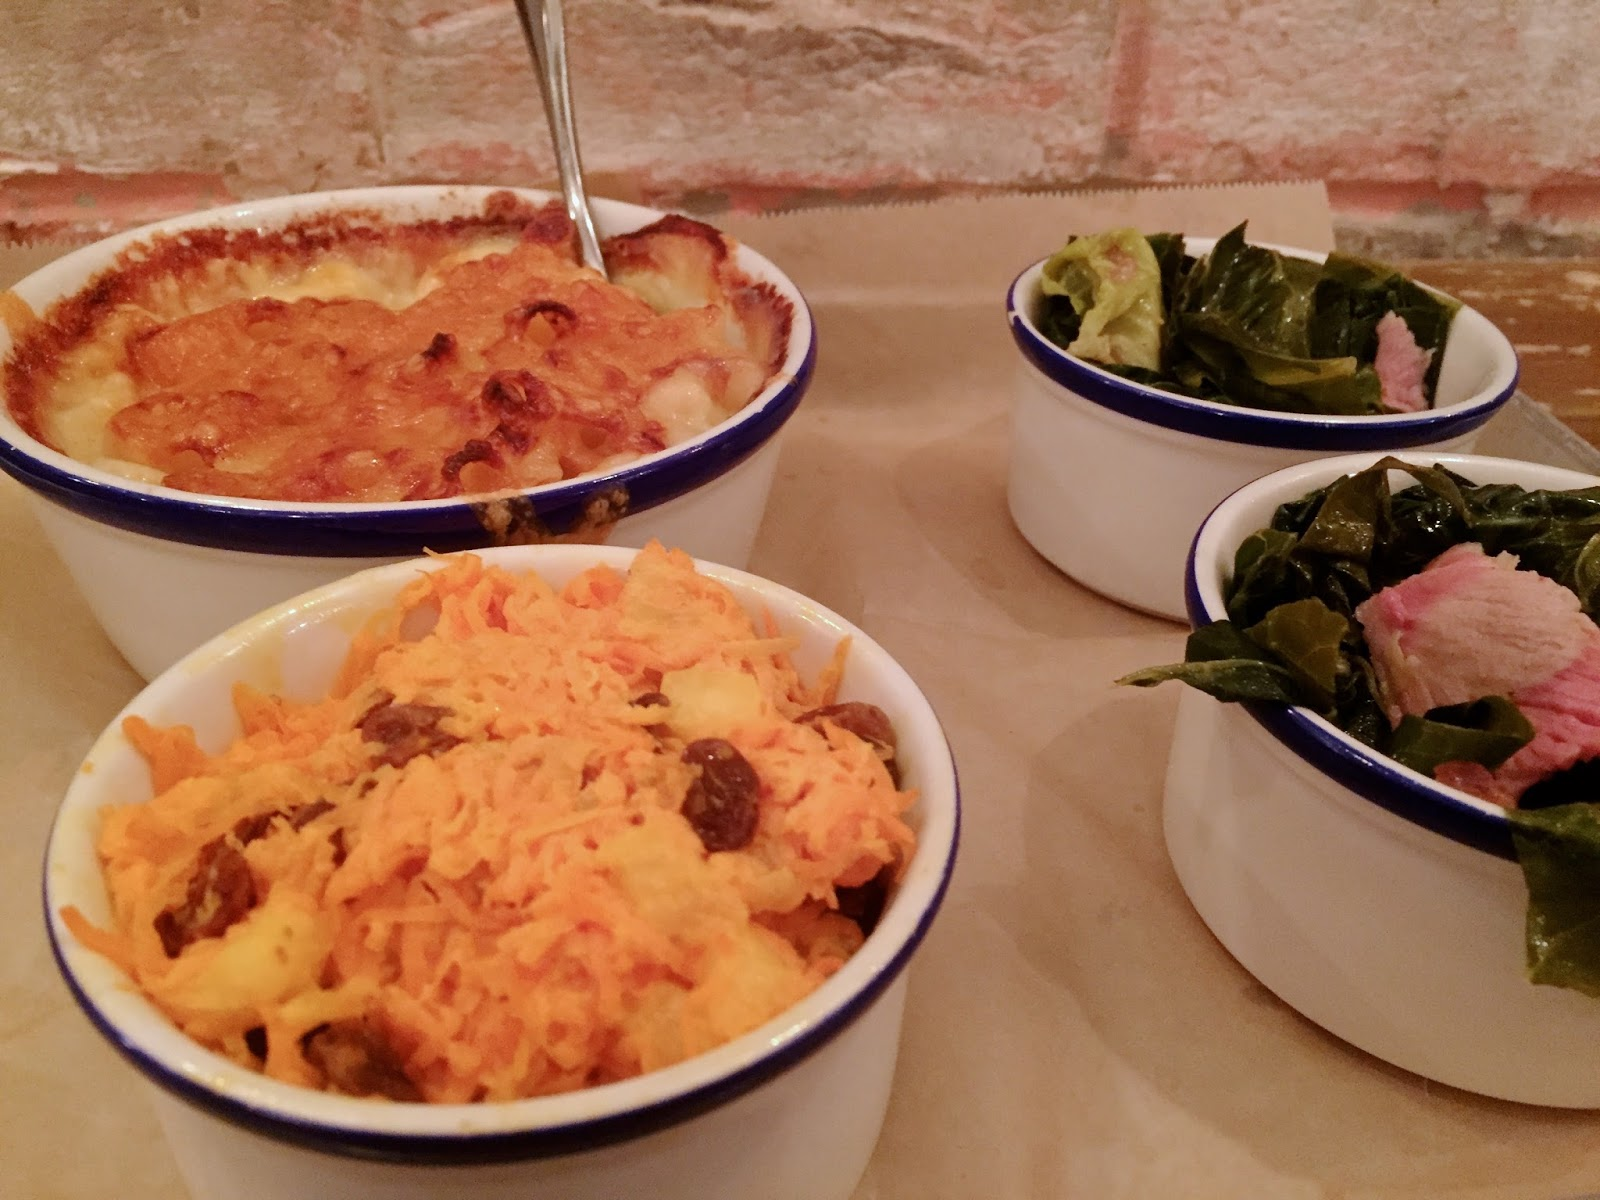 Macaroni & cheese, carrot salad and southern greens